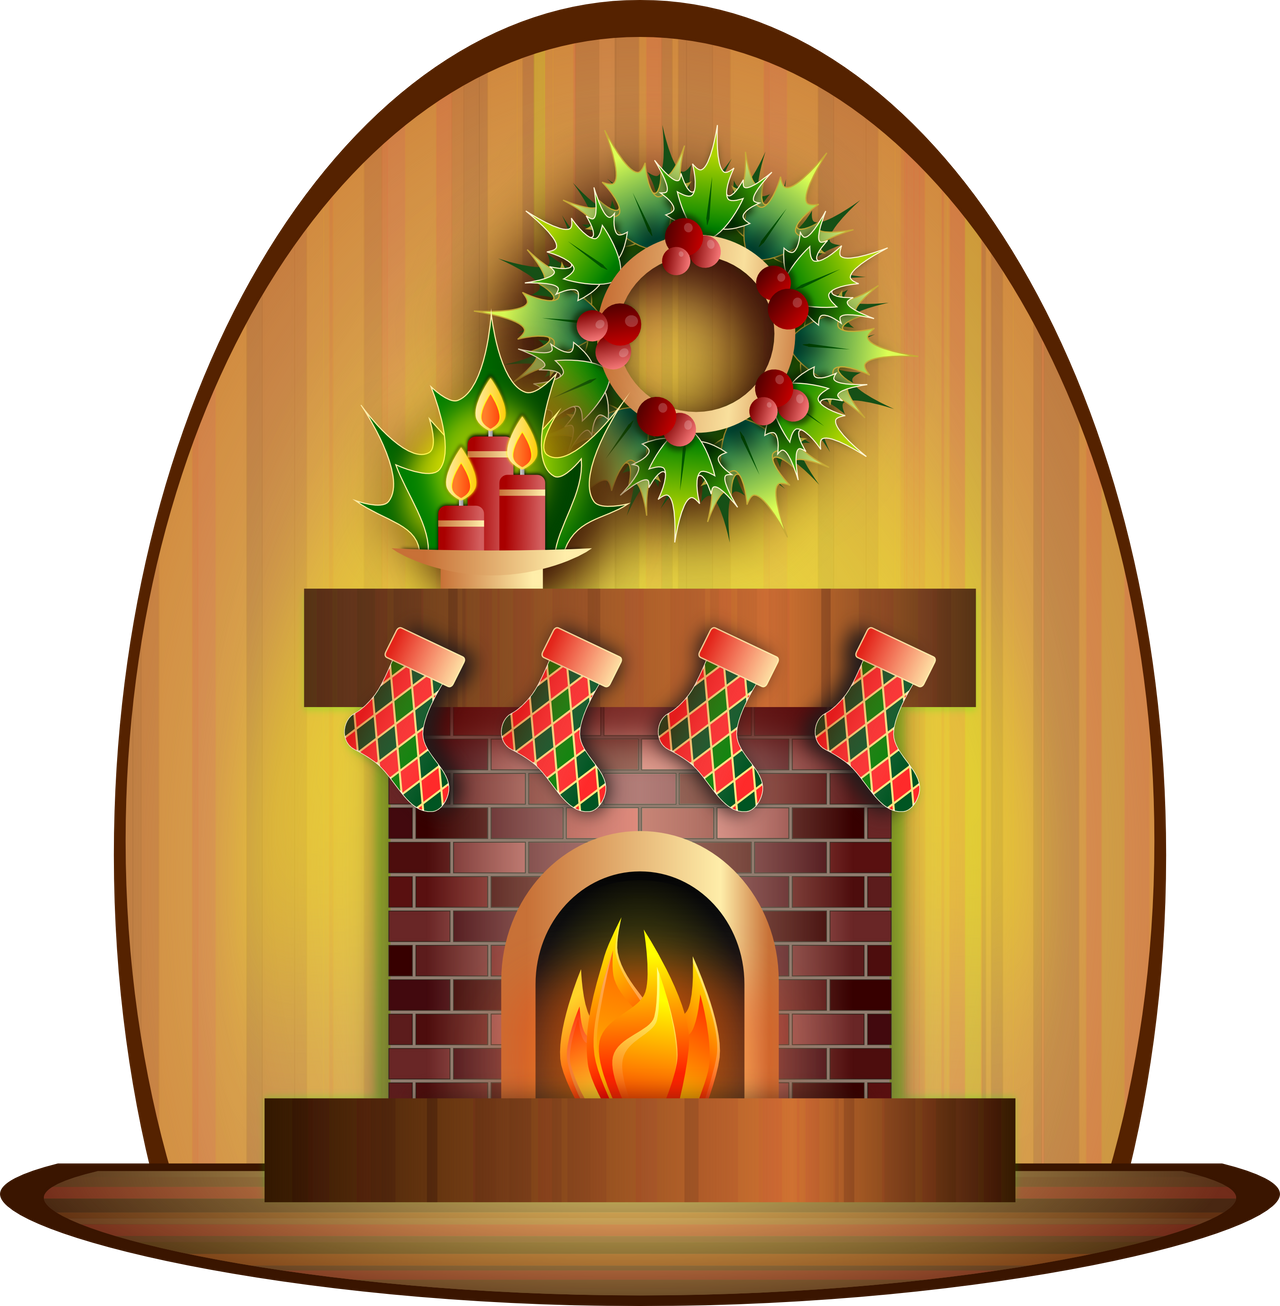 christmas fireplace by viscious speed on deviantart rh viscious speed deviantart com christmas fireplace clipart free